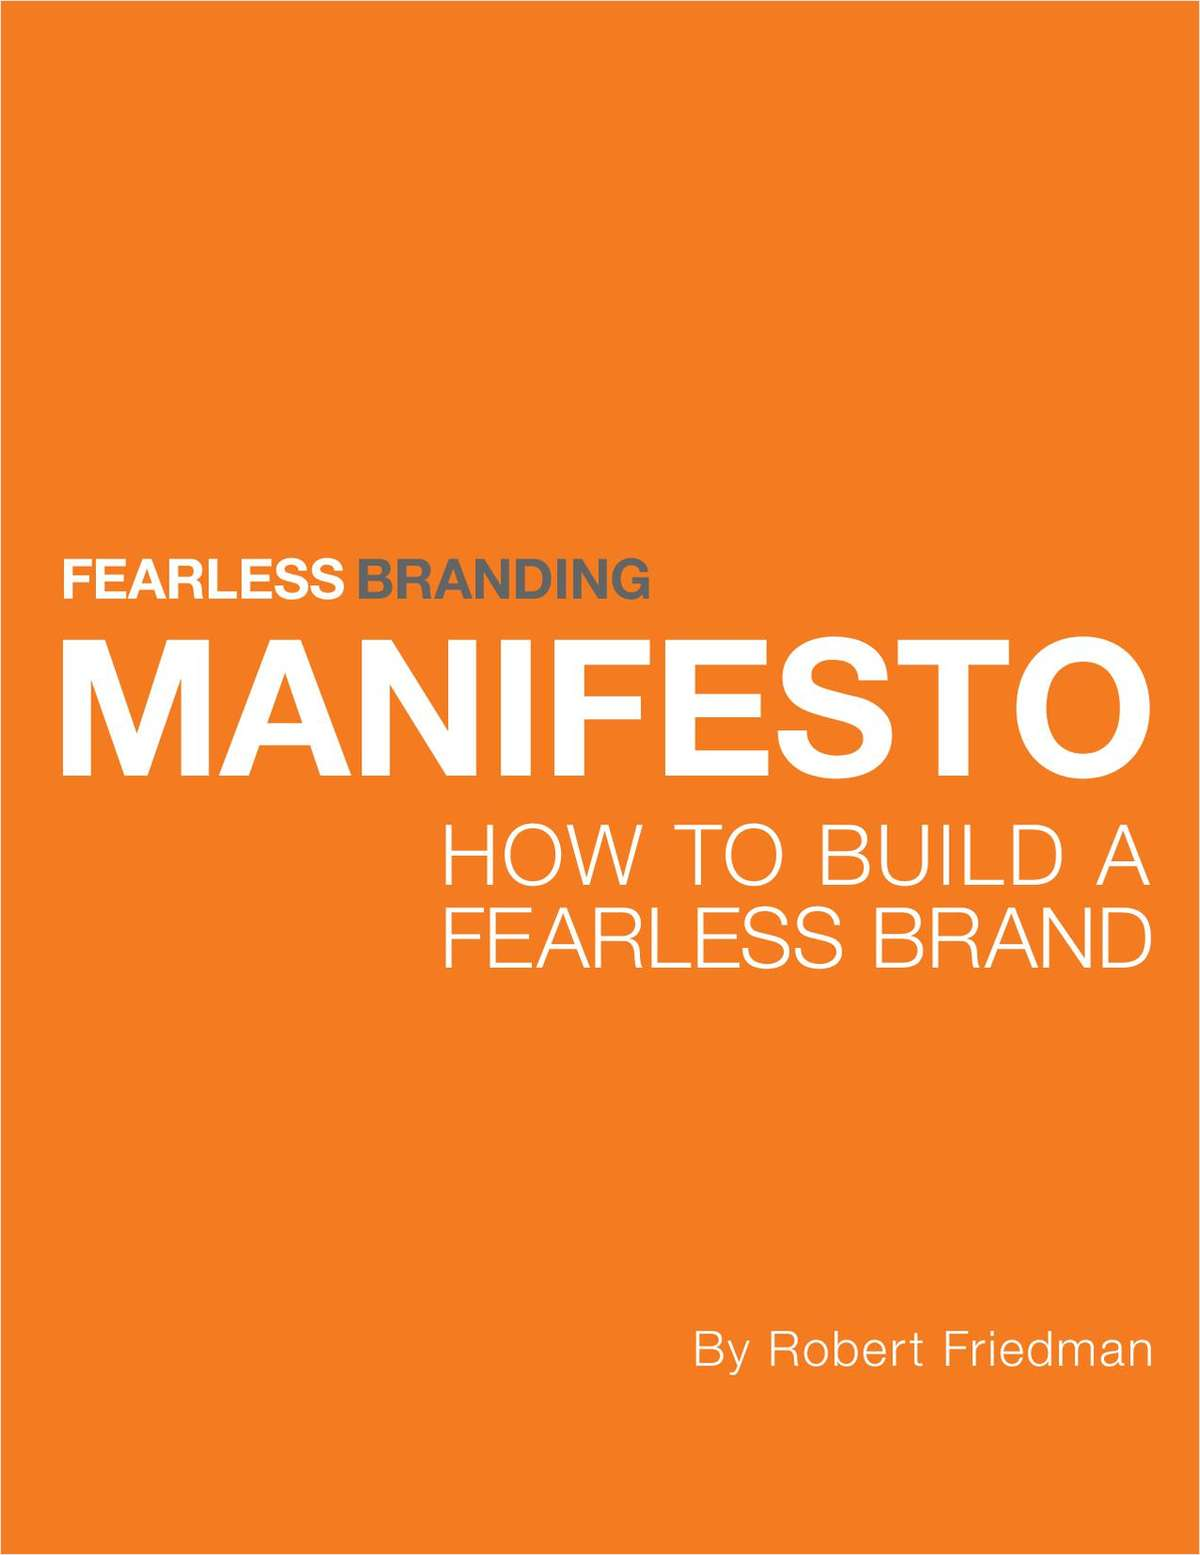 How to Build a Fearless Brand